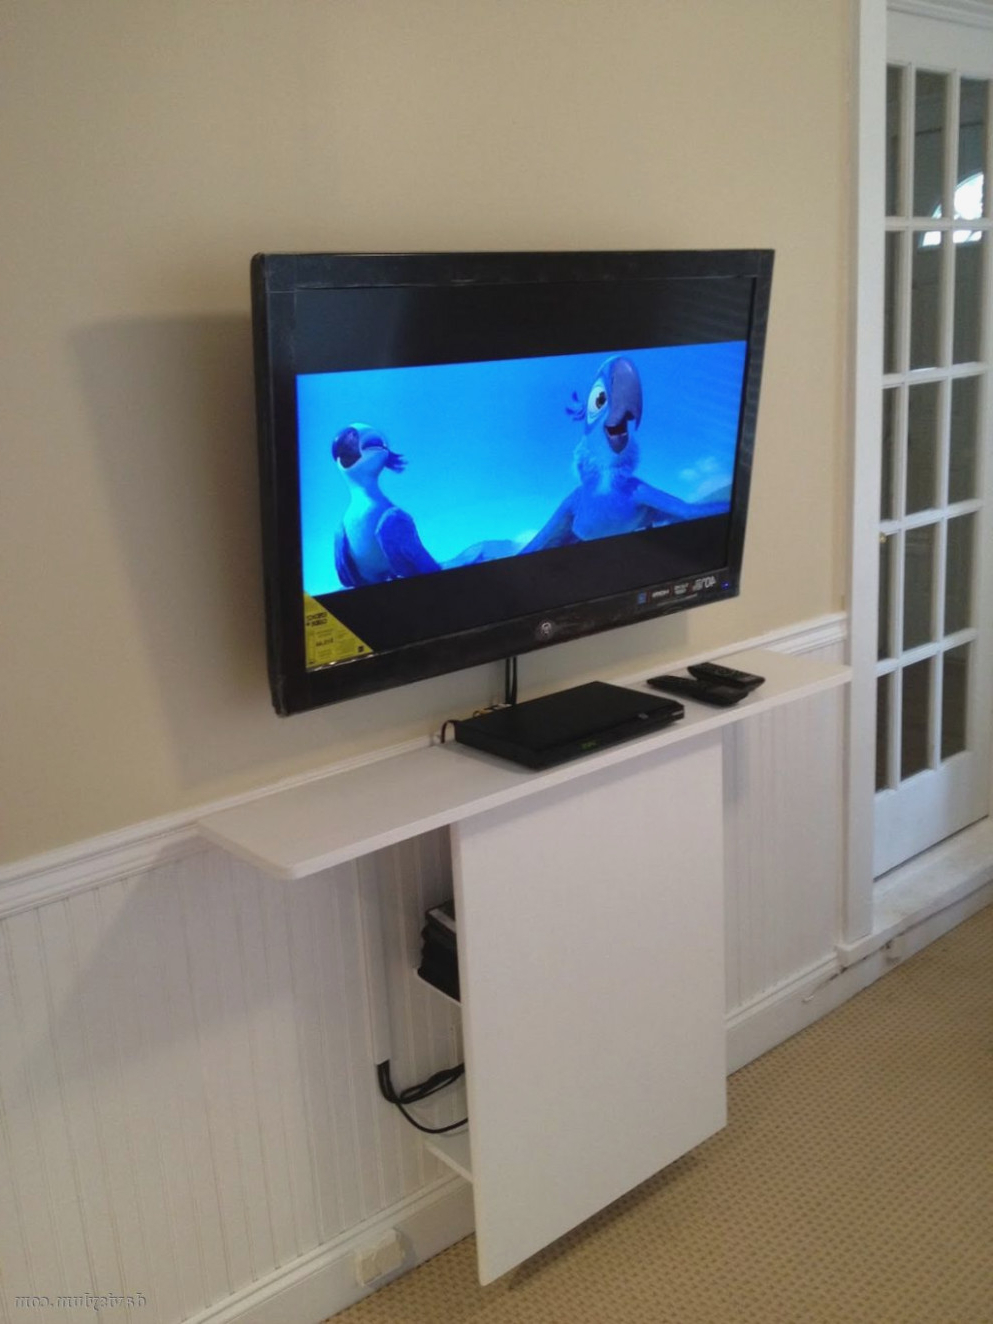 Recent Tall Skinny Tv Stand Excellent Narrow For Bedroom Stands Slim And On With Regard To Skinny Tv Stands (View 7 of 20)